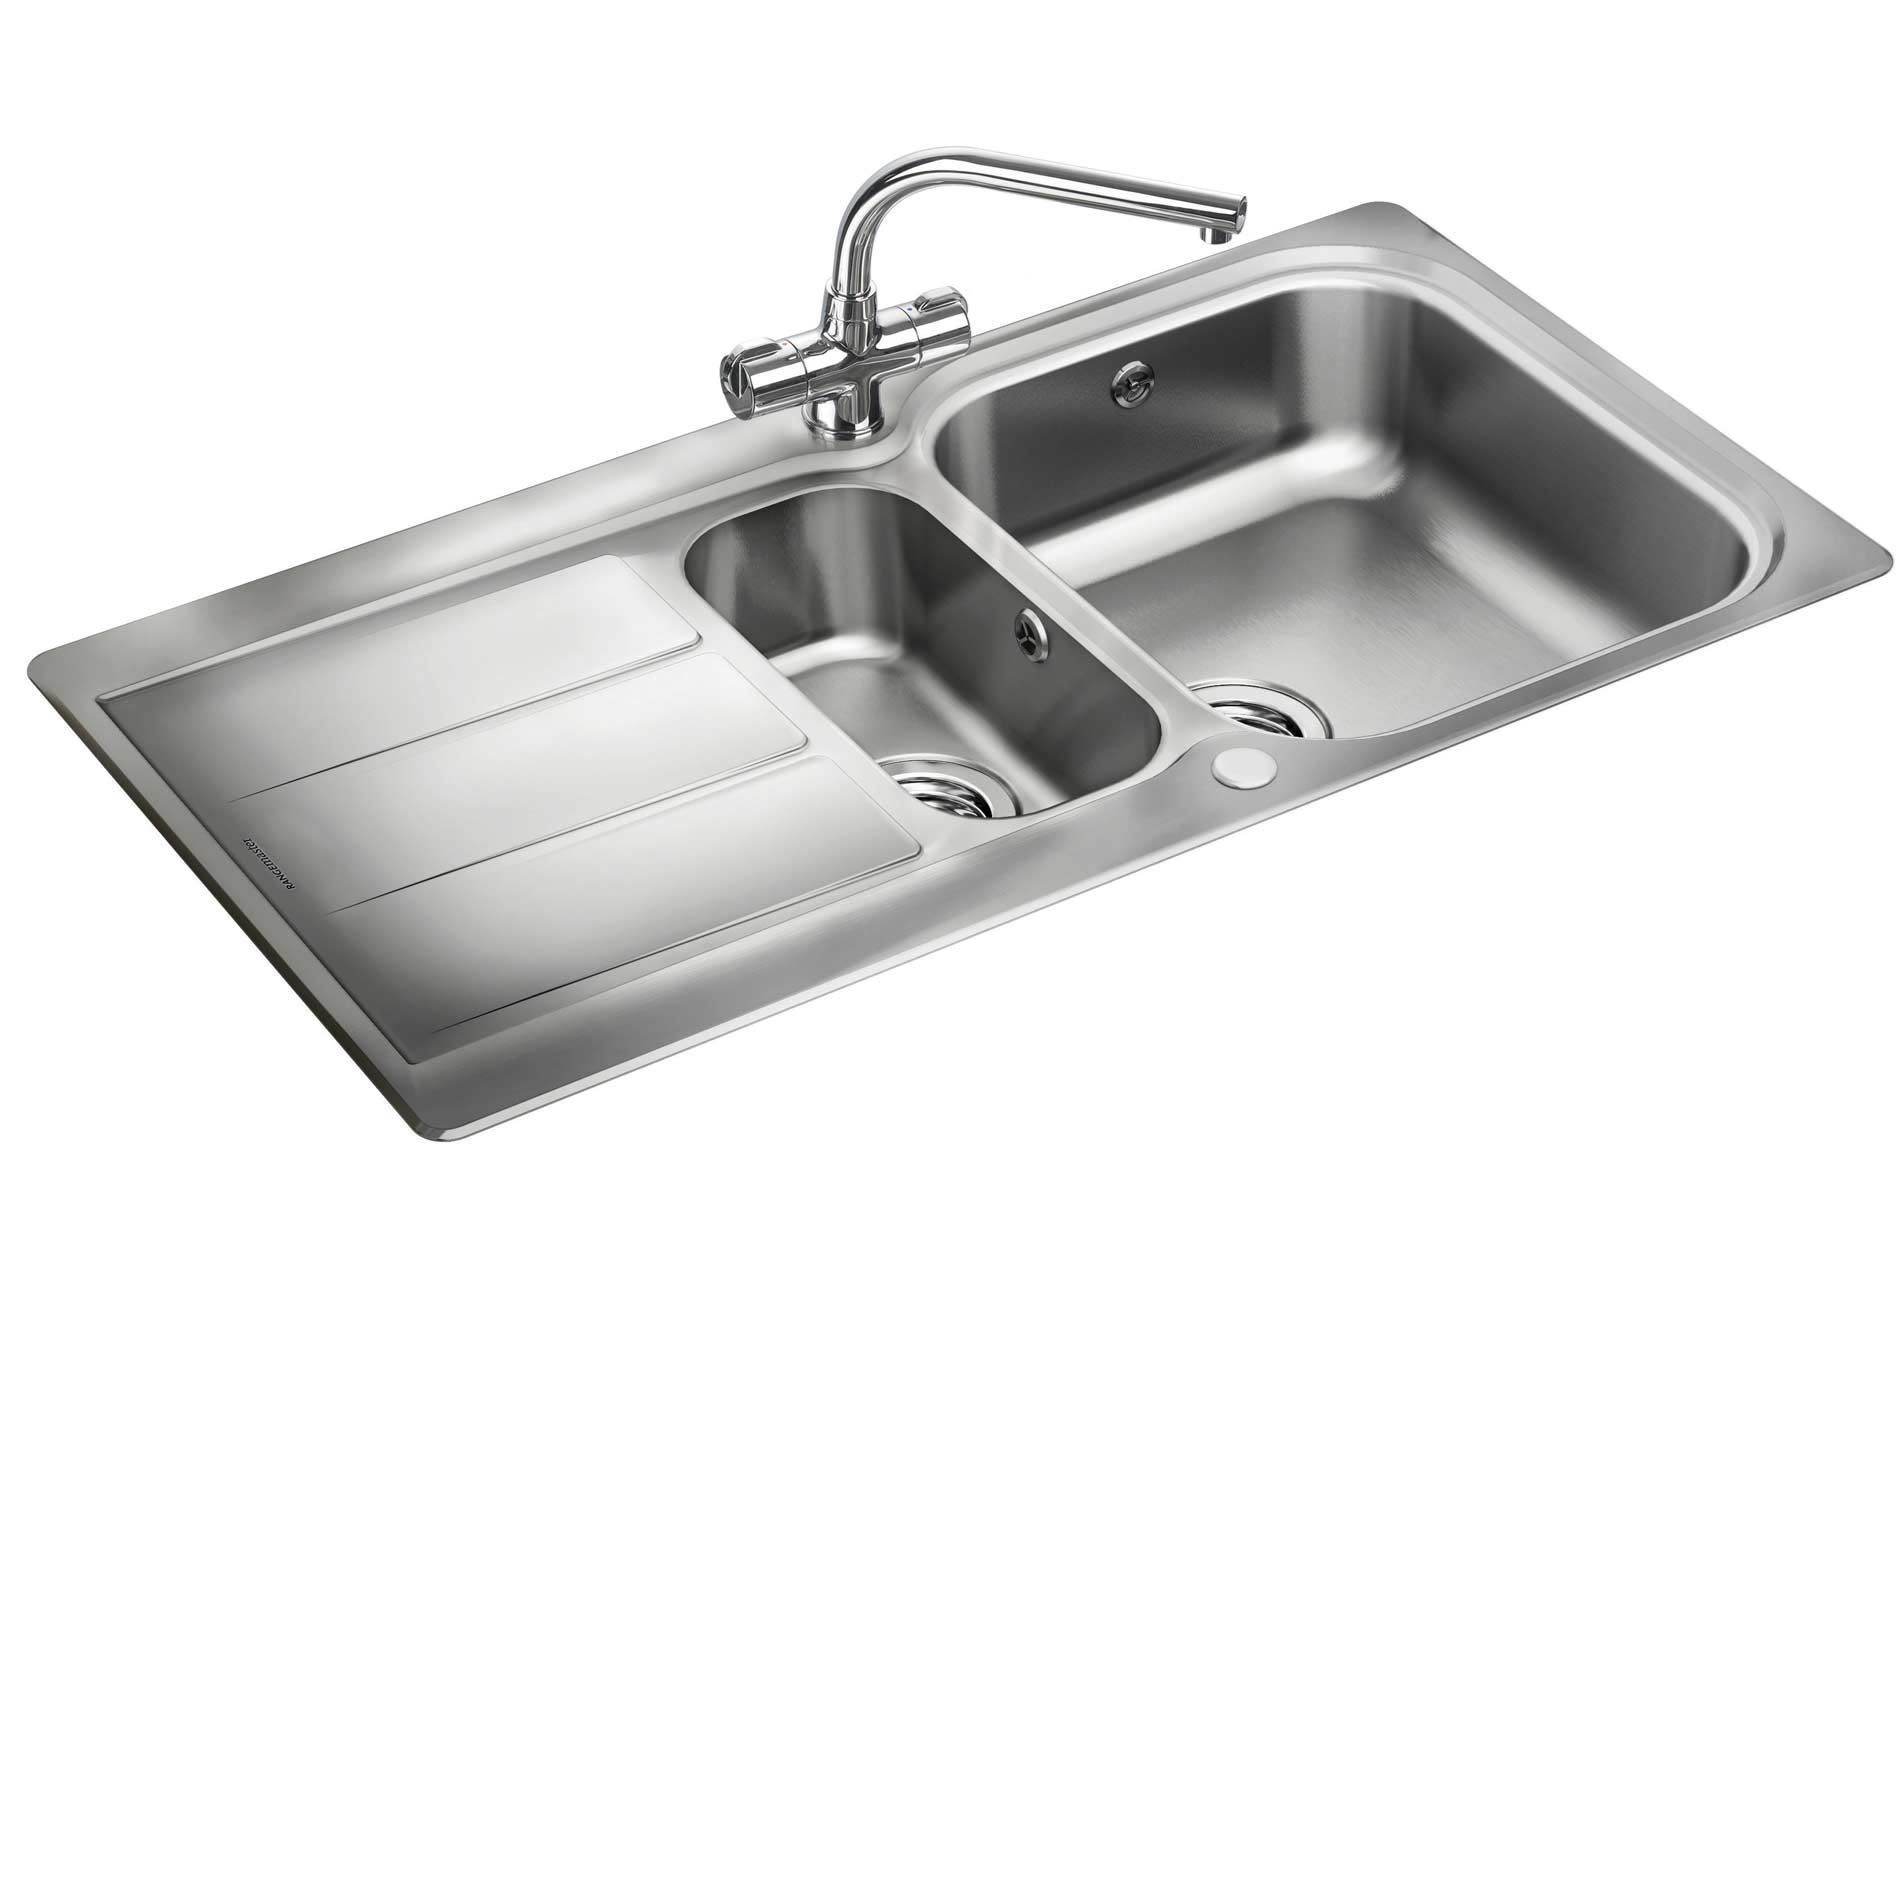 Picture of Glendale GL9502 Stainless Steel Sink